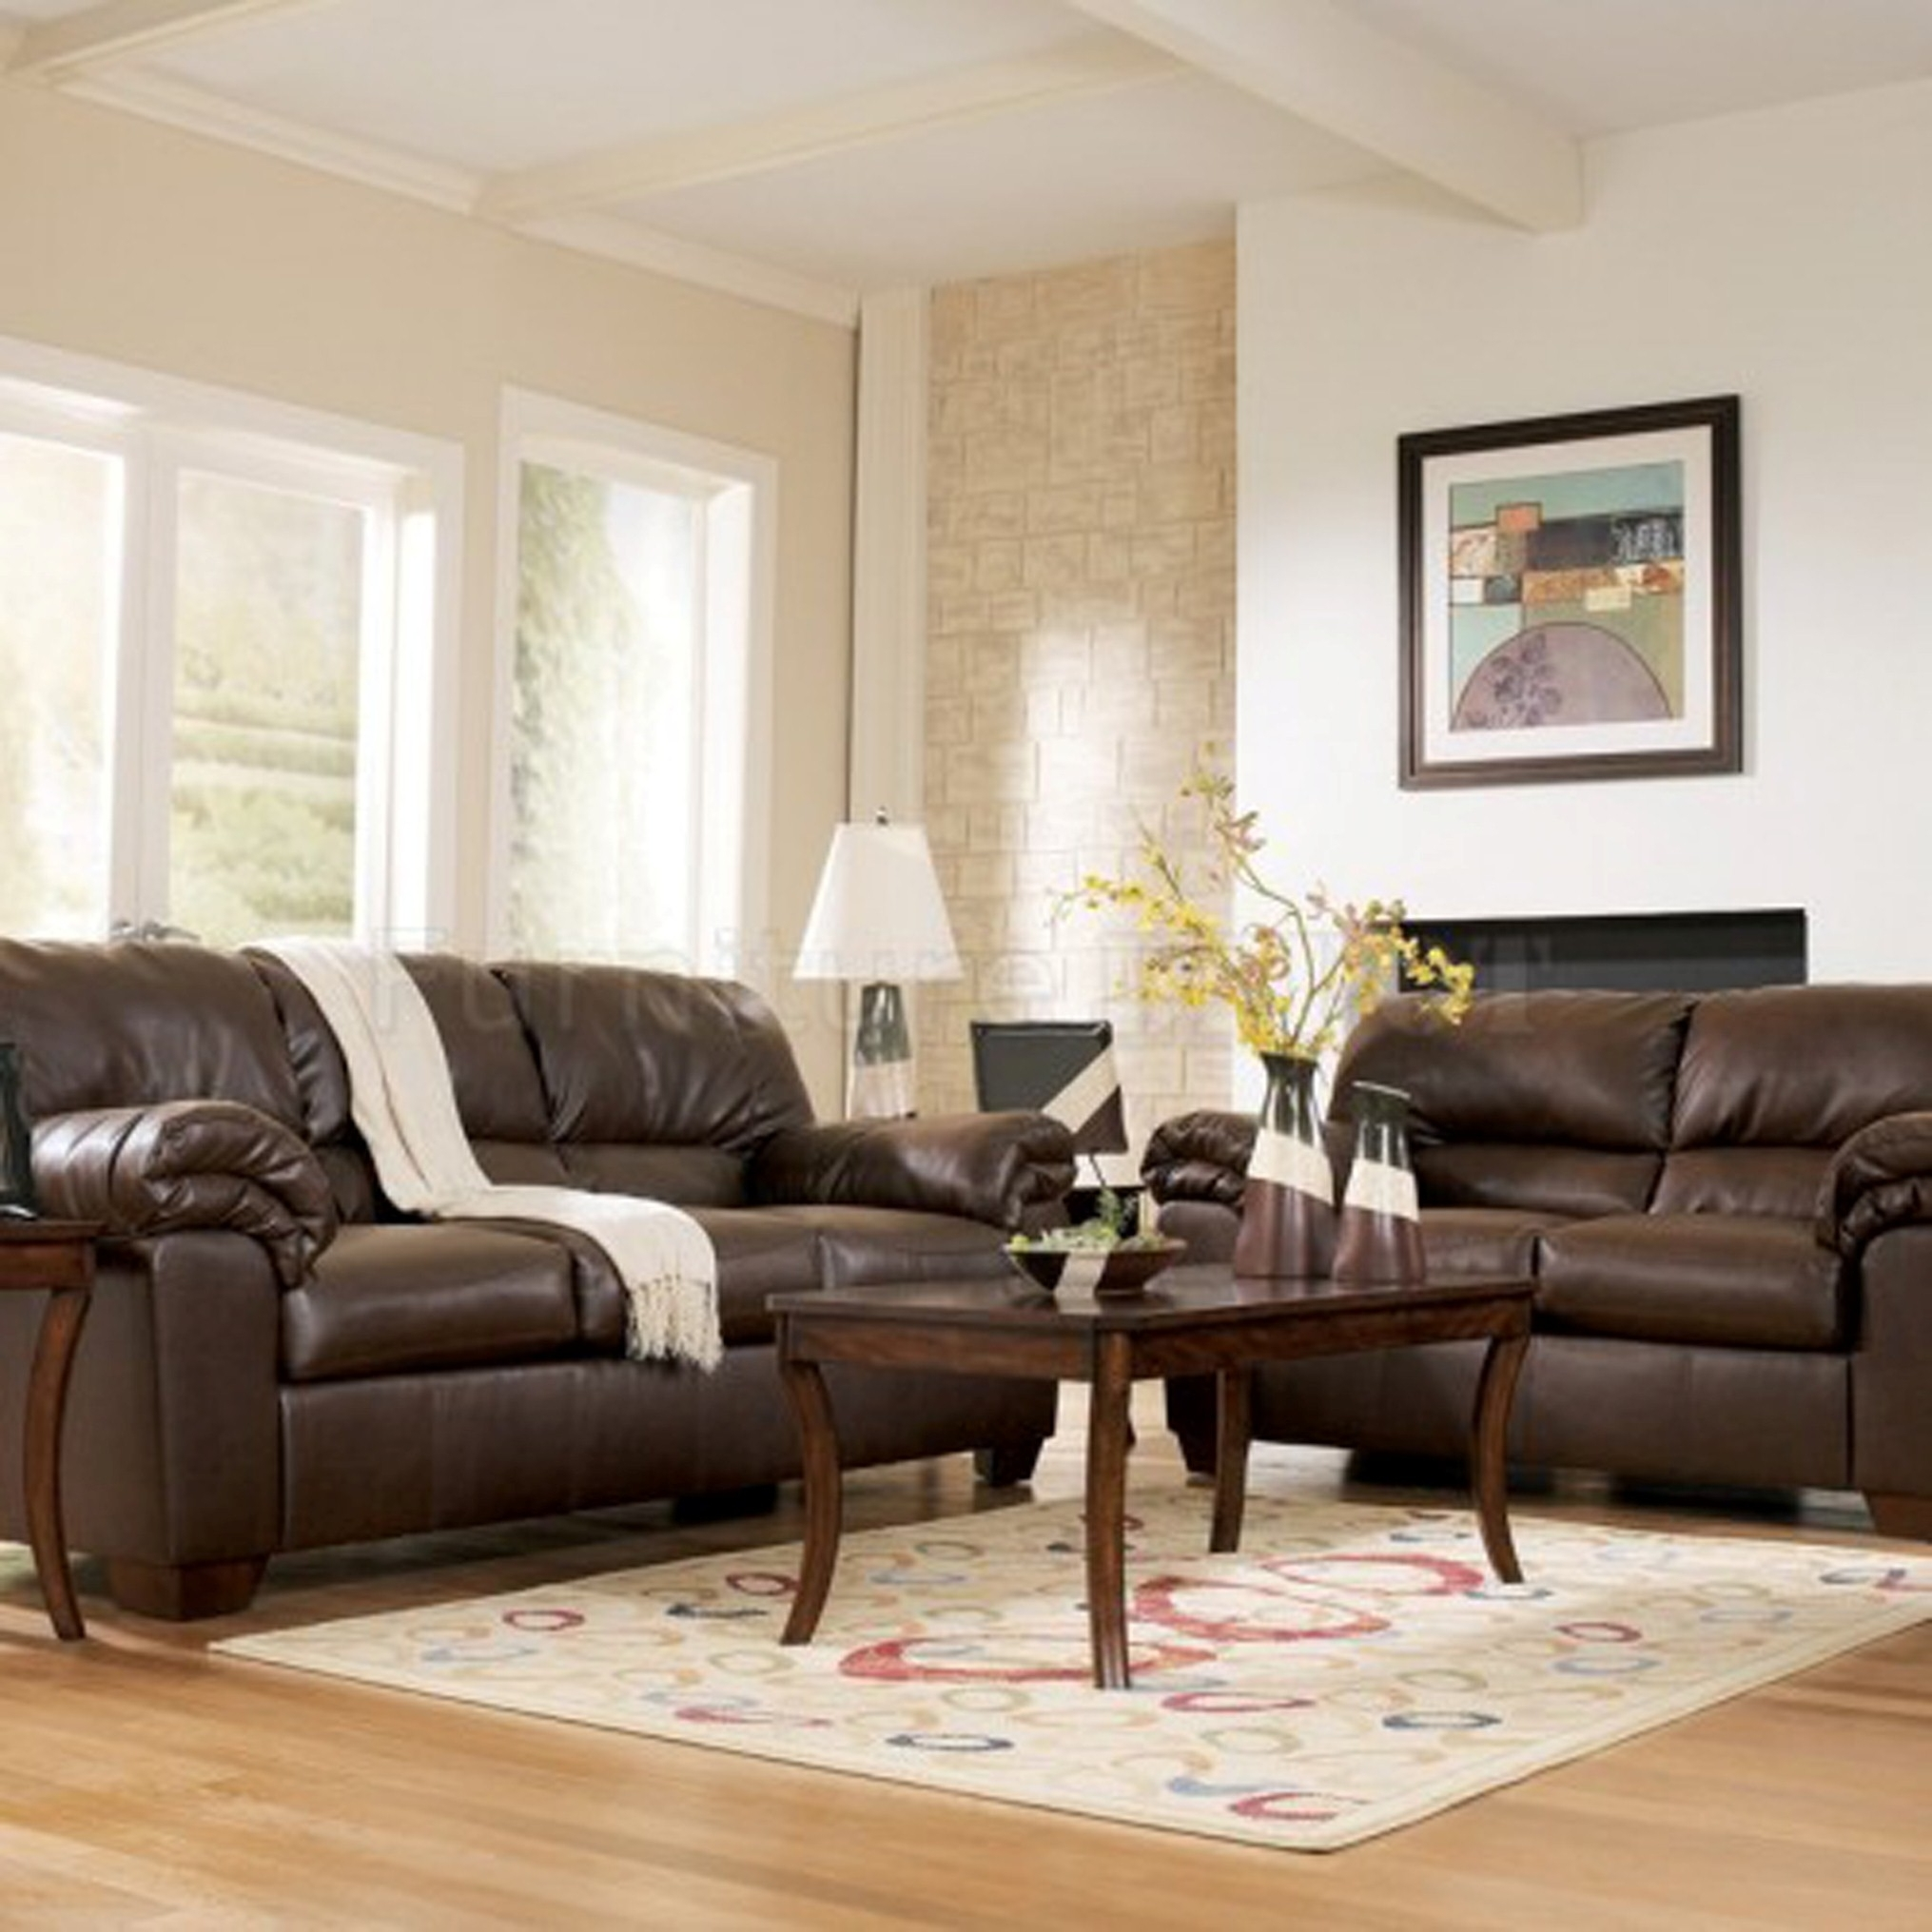 Living room ideas brown leather sofa modern house for Brown furniture living room ideas